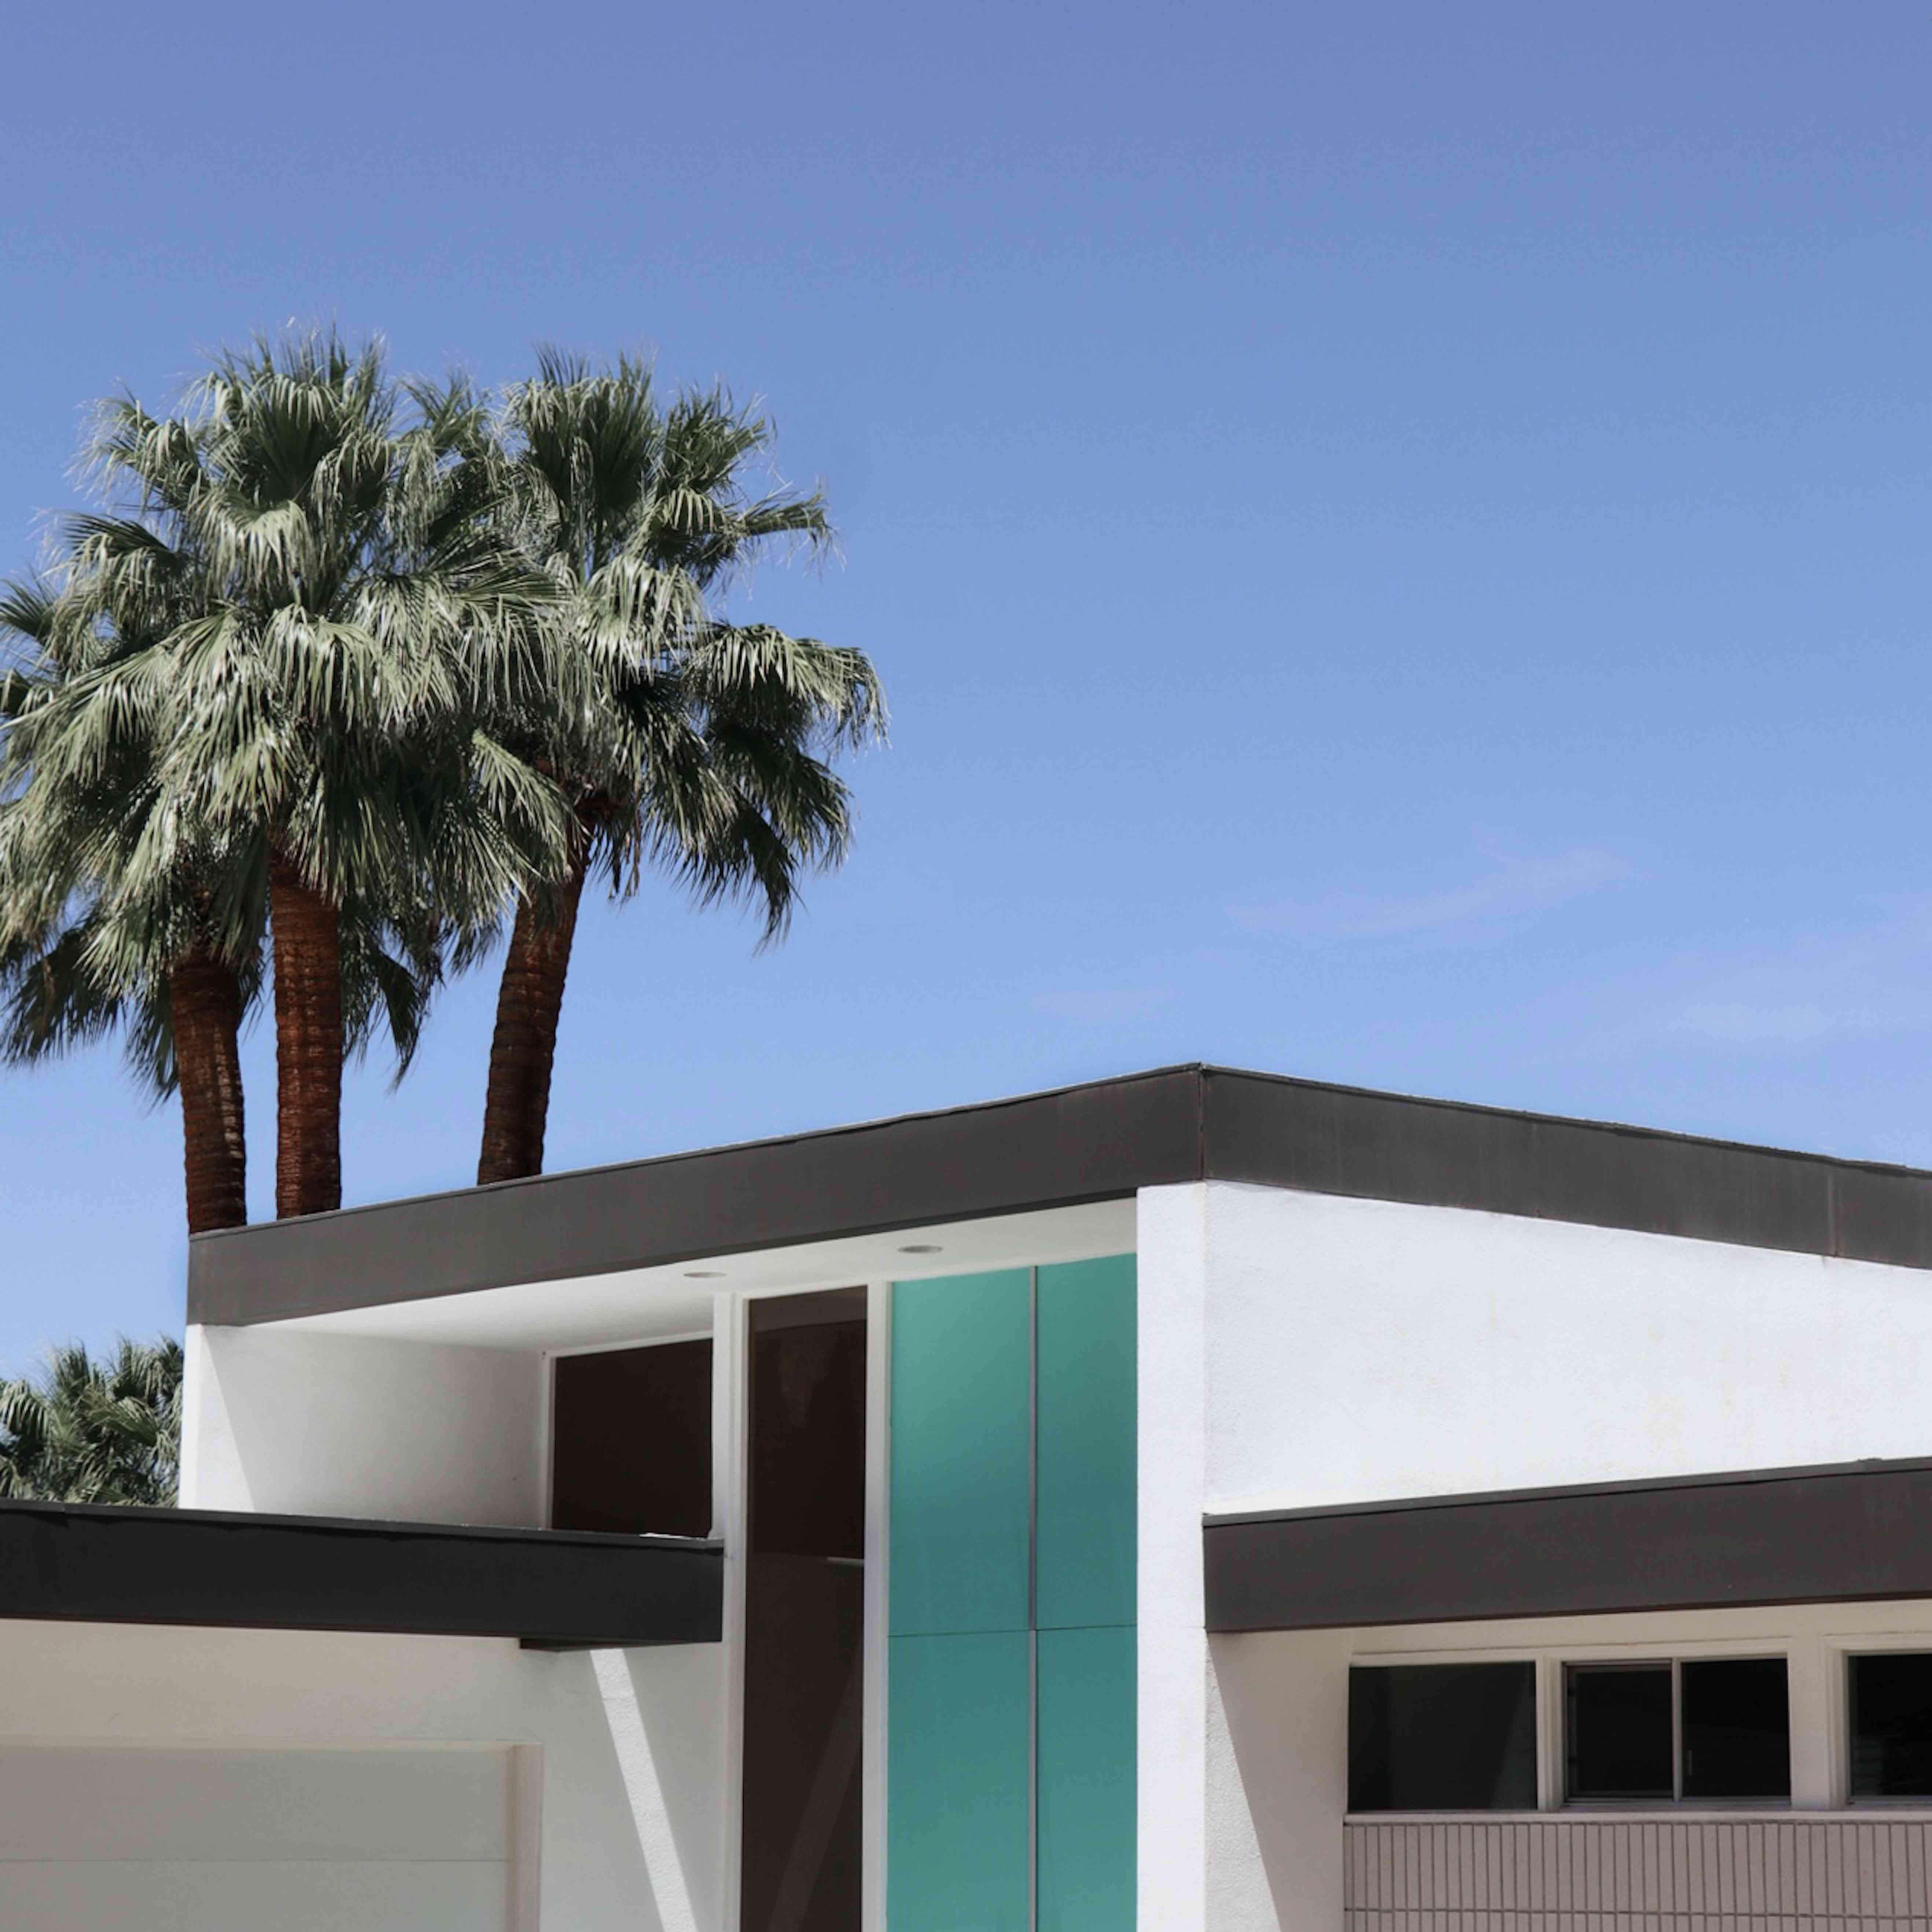 light blue front door of a modern home with palm trees